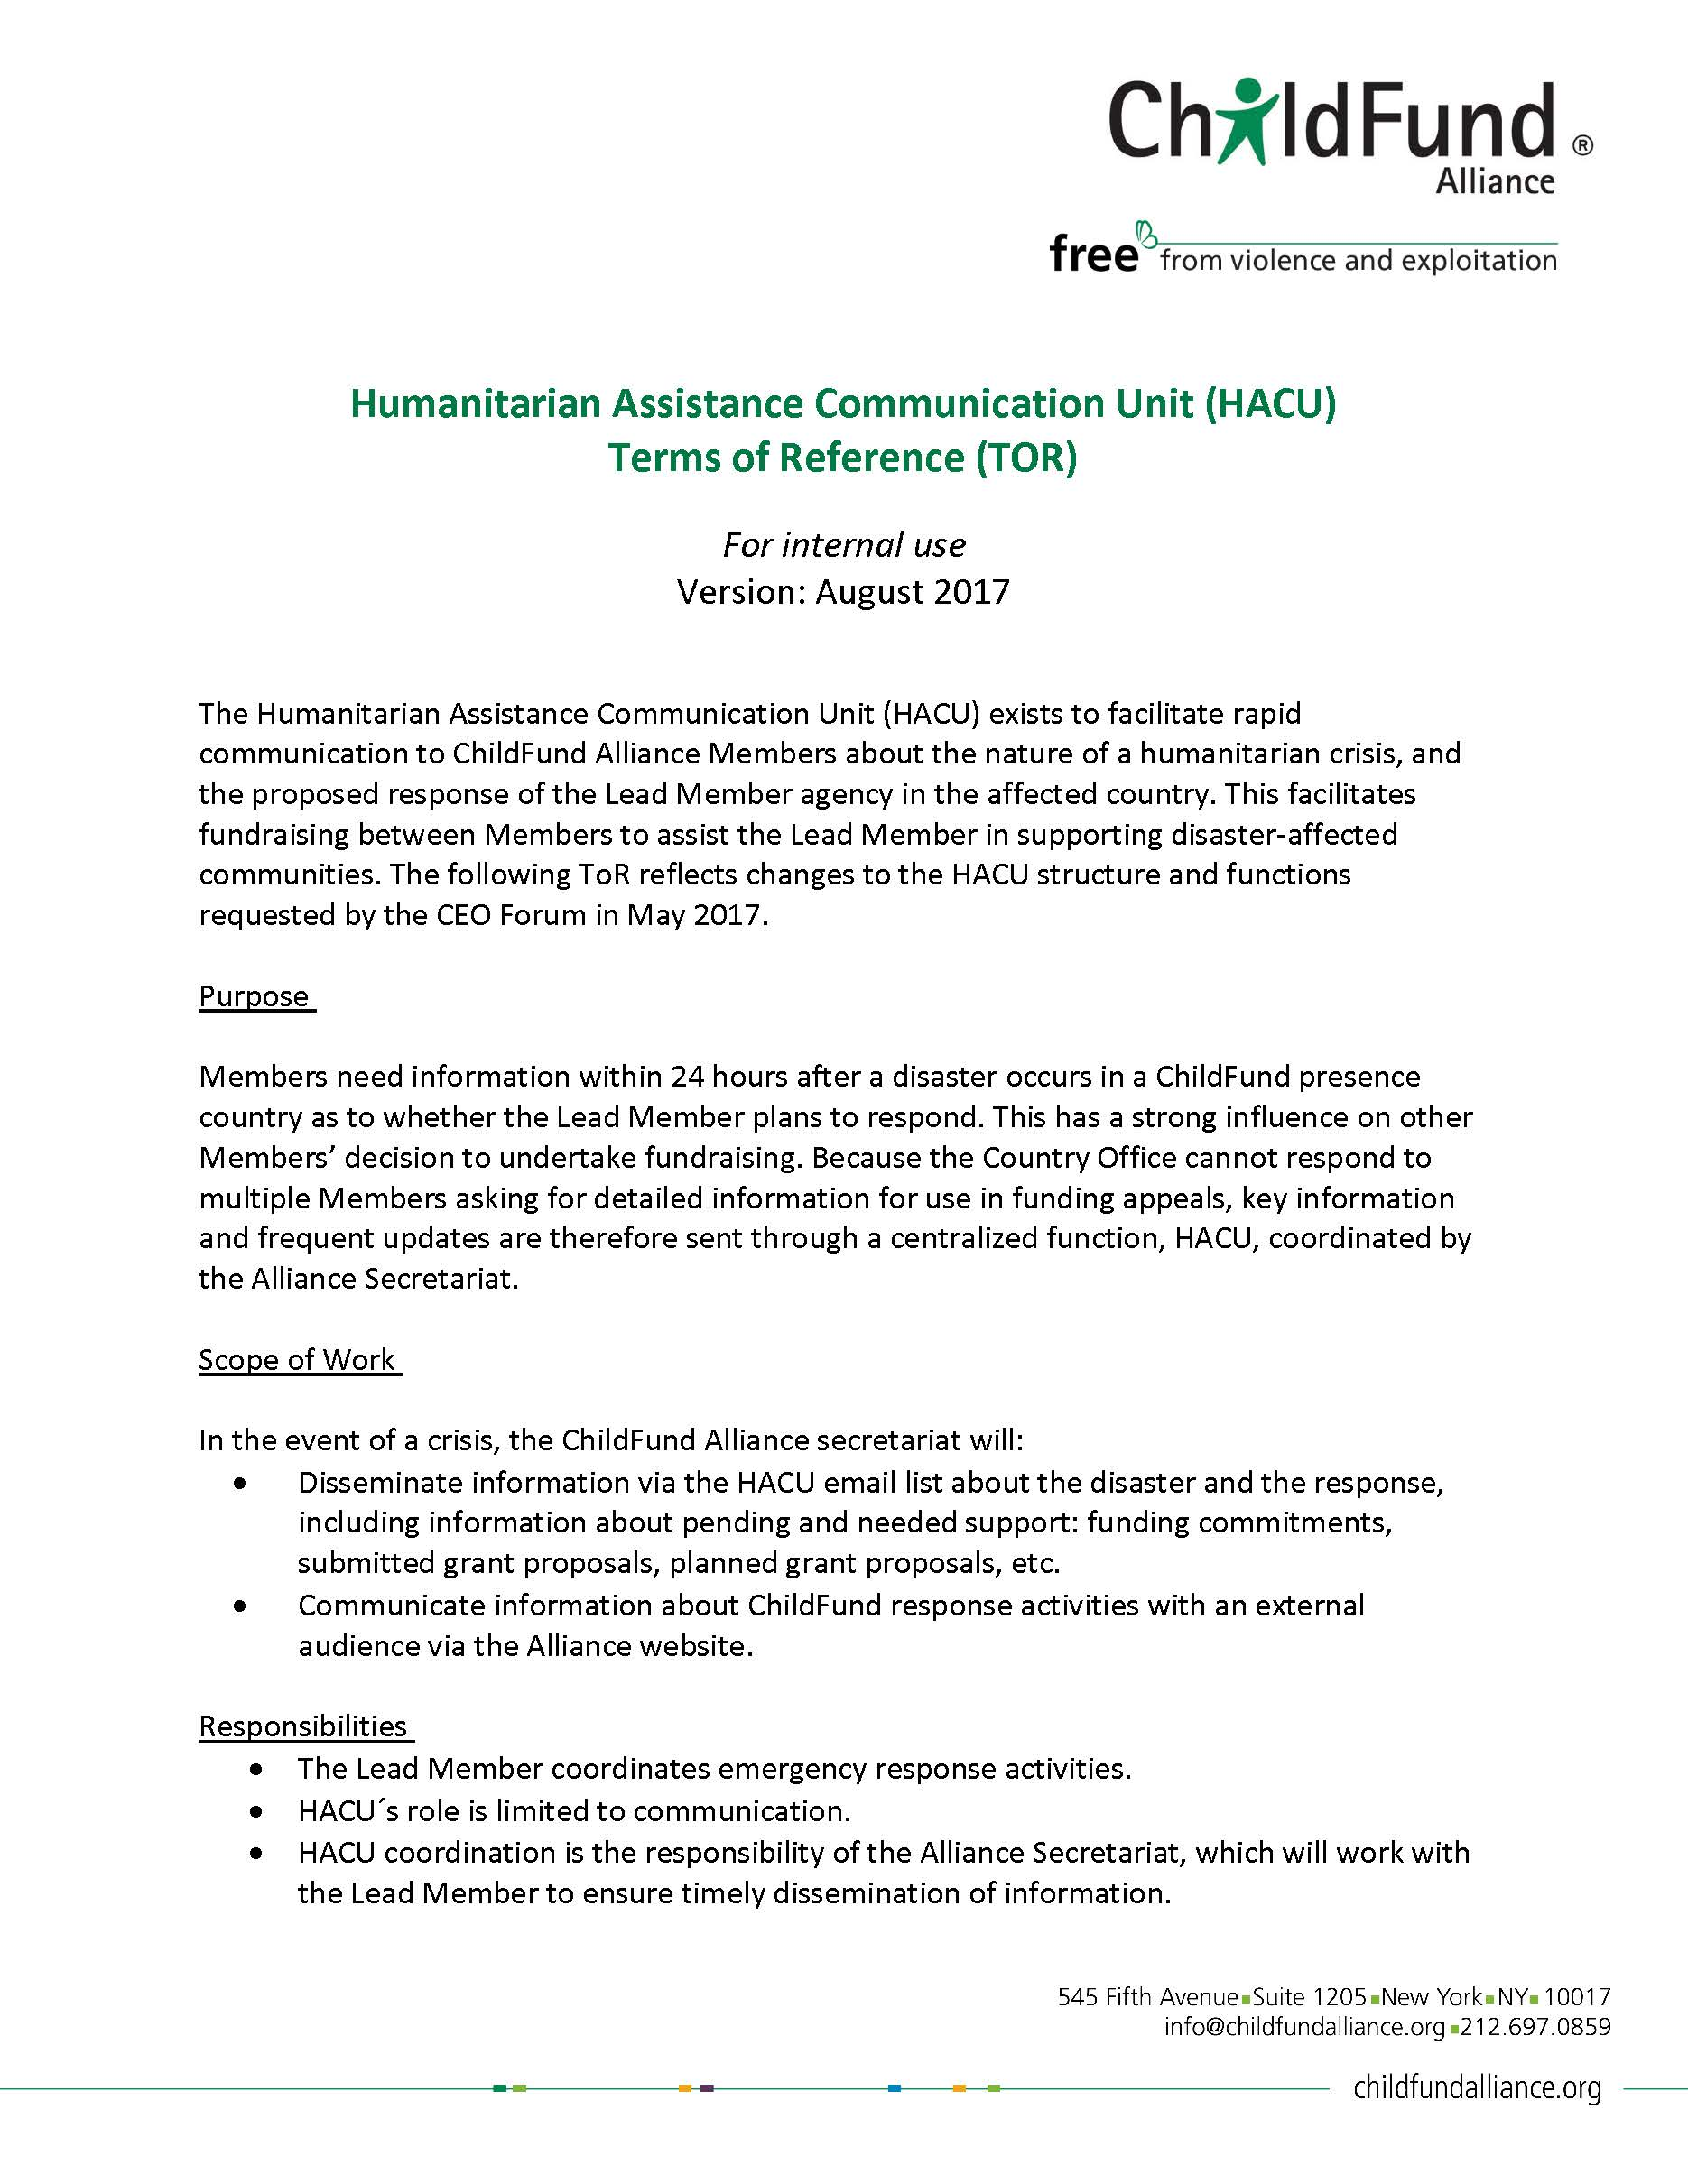 Humanitarian Assistance Communication Unit (HACU) Policies & Guidelines thumbnail